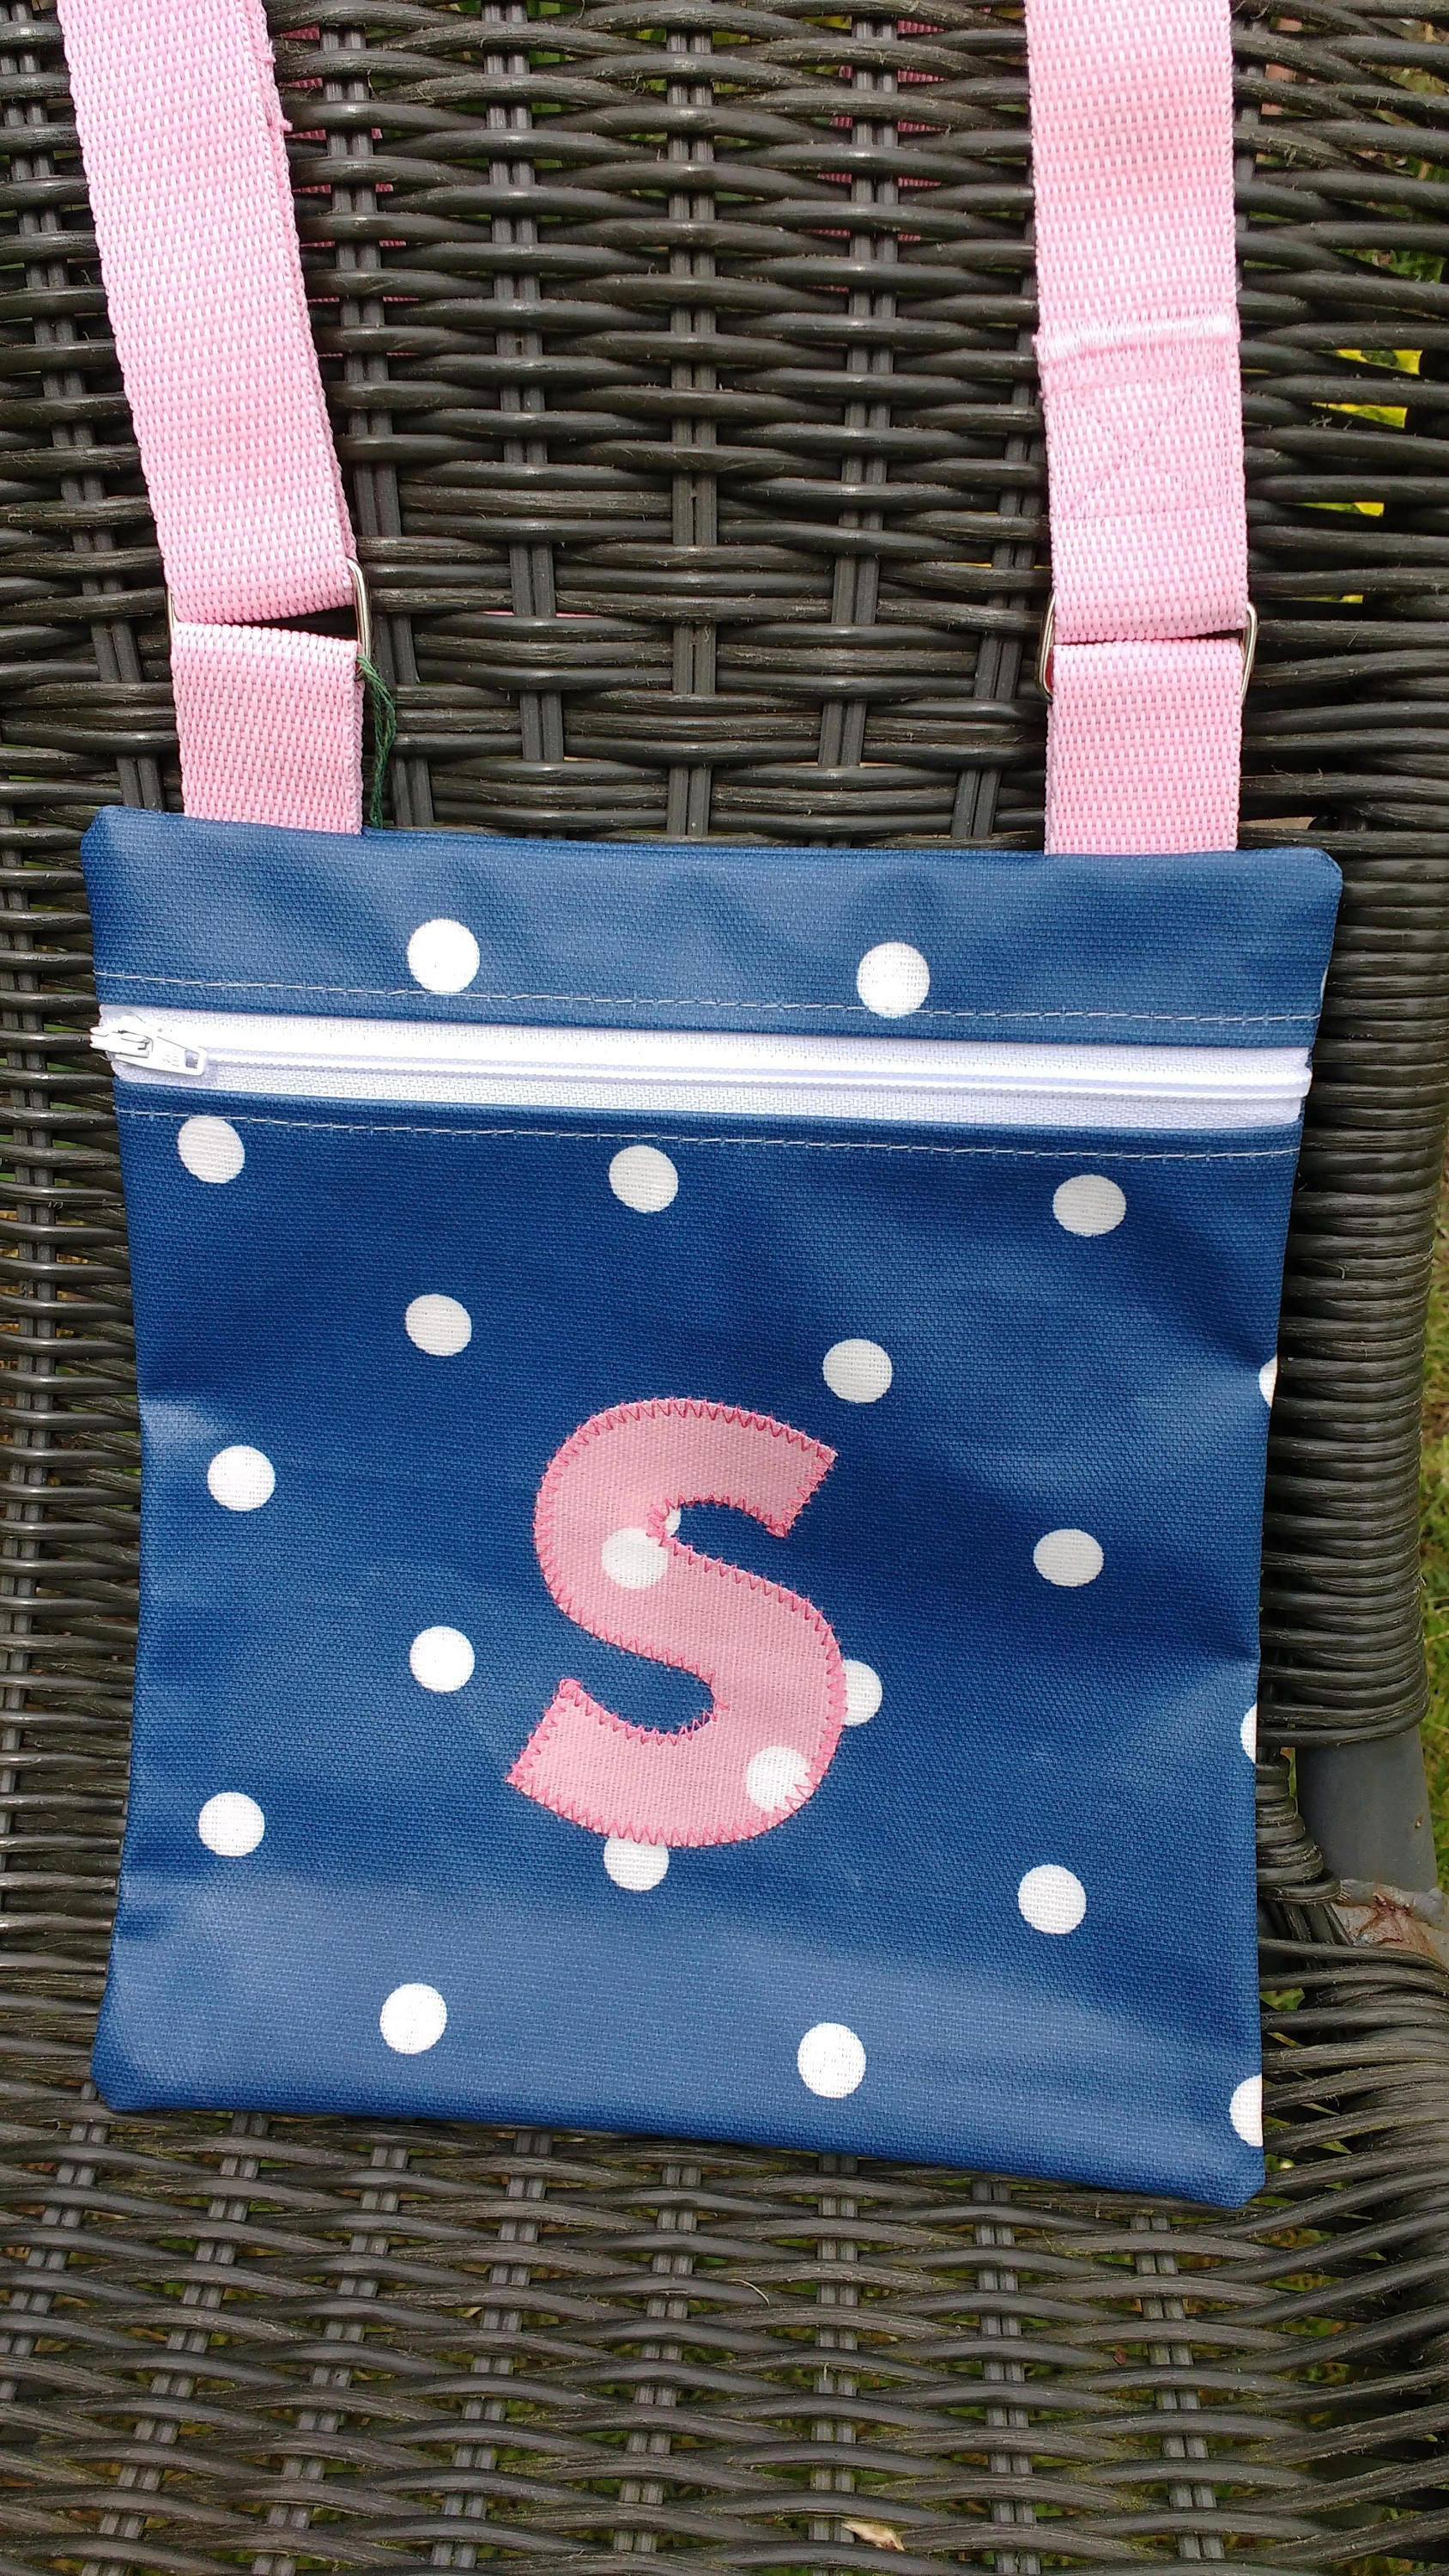 Customised childs cross body bag shoulder bag zip top bag bag for girls available with or without customisation personalised